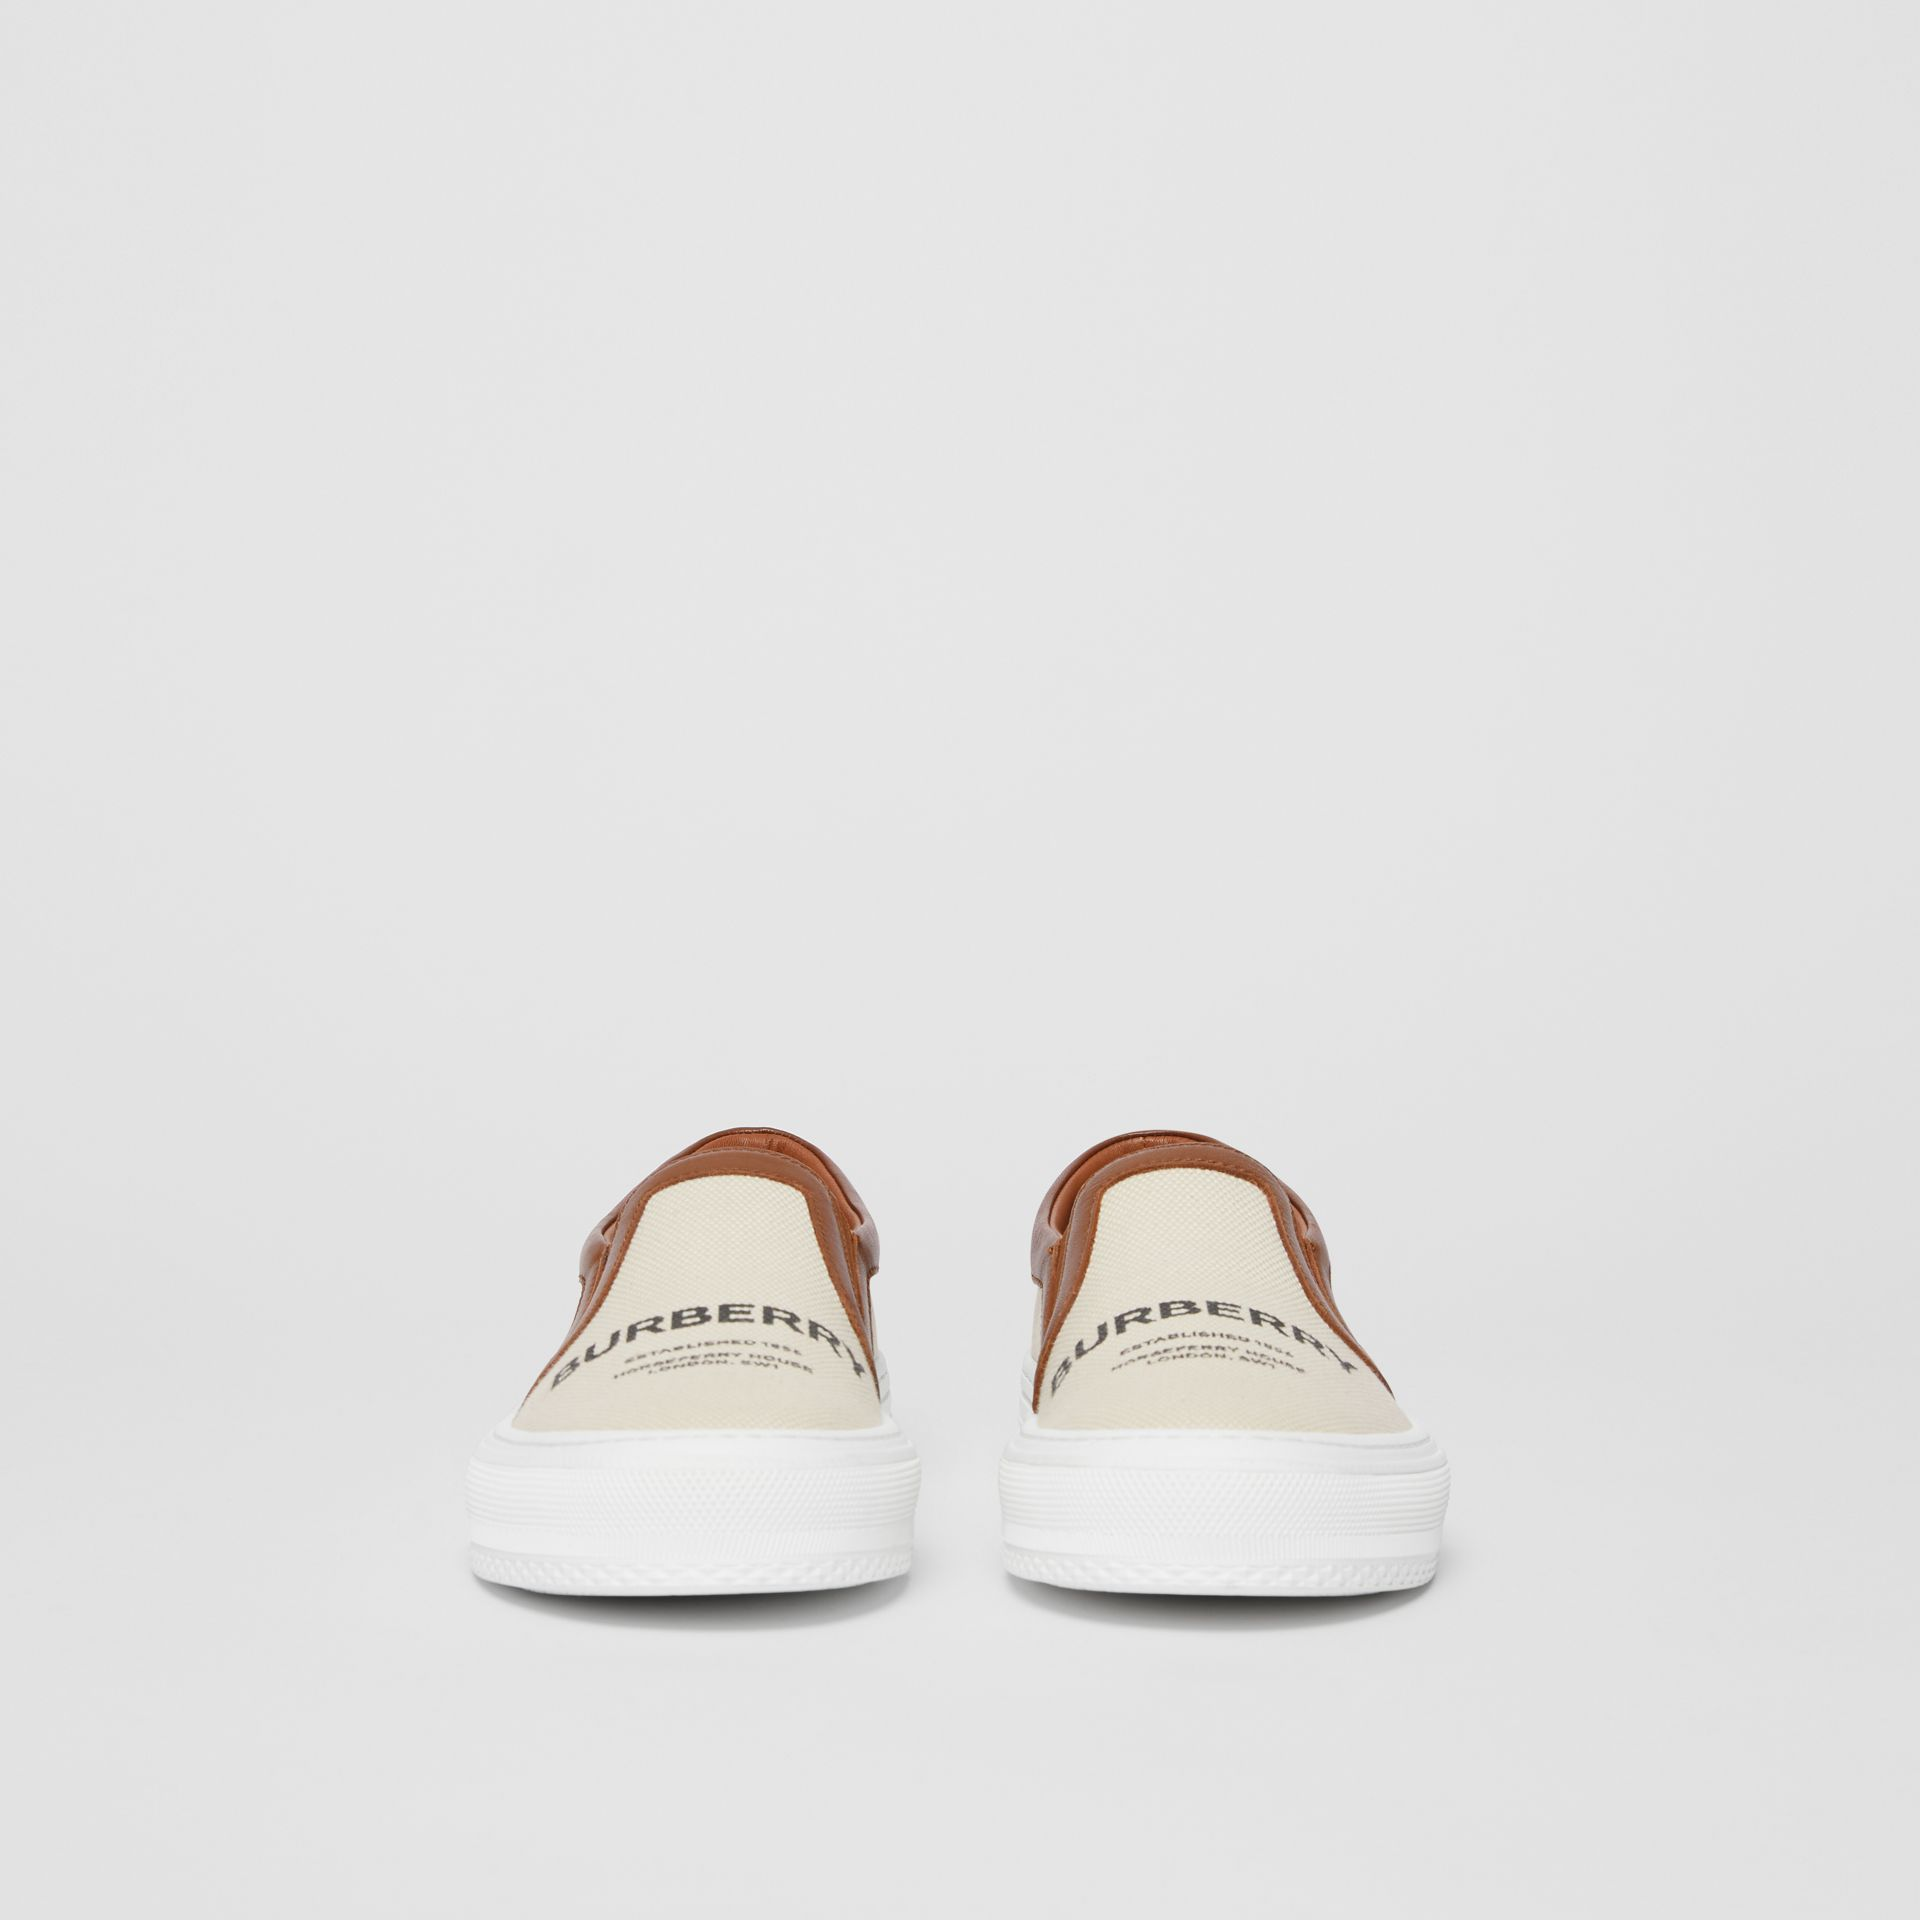 Sneakers sans lacets en coton et cuir Horseferry (Brun Malt) - Femme | Burberry - photo de la galerie 2